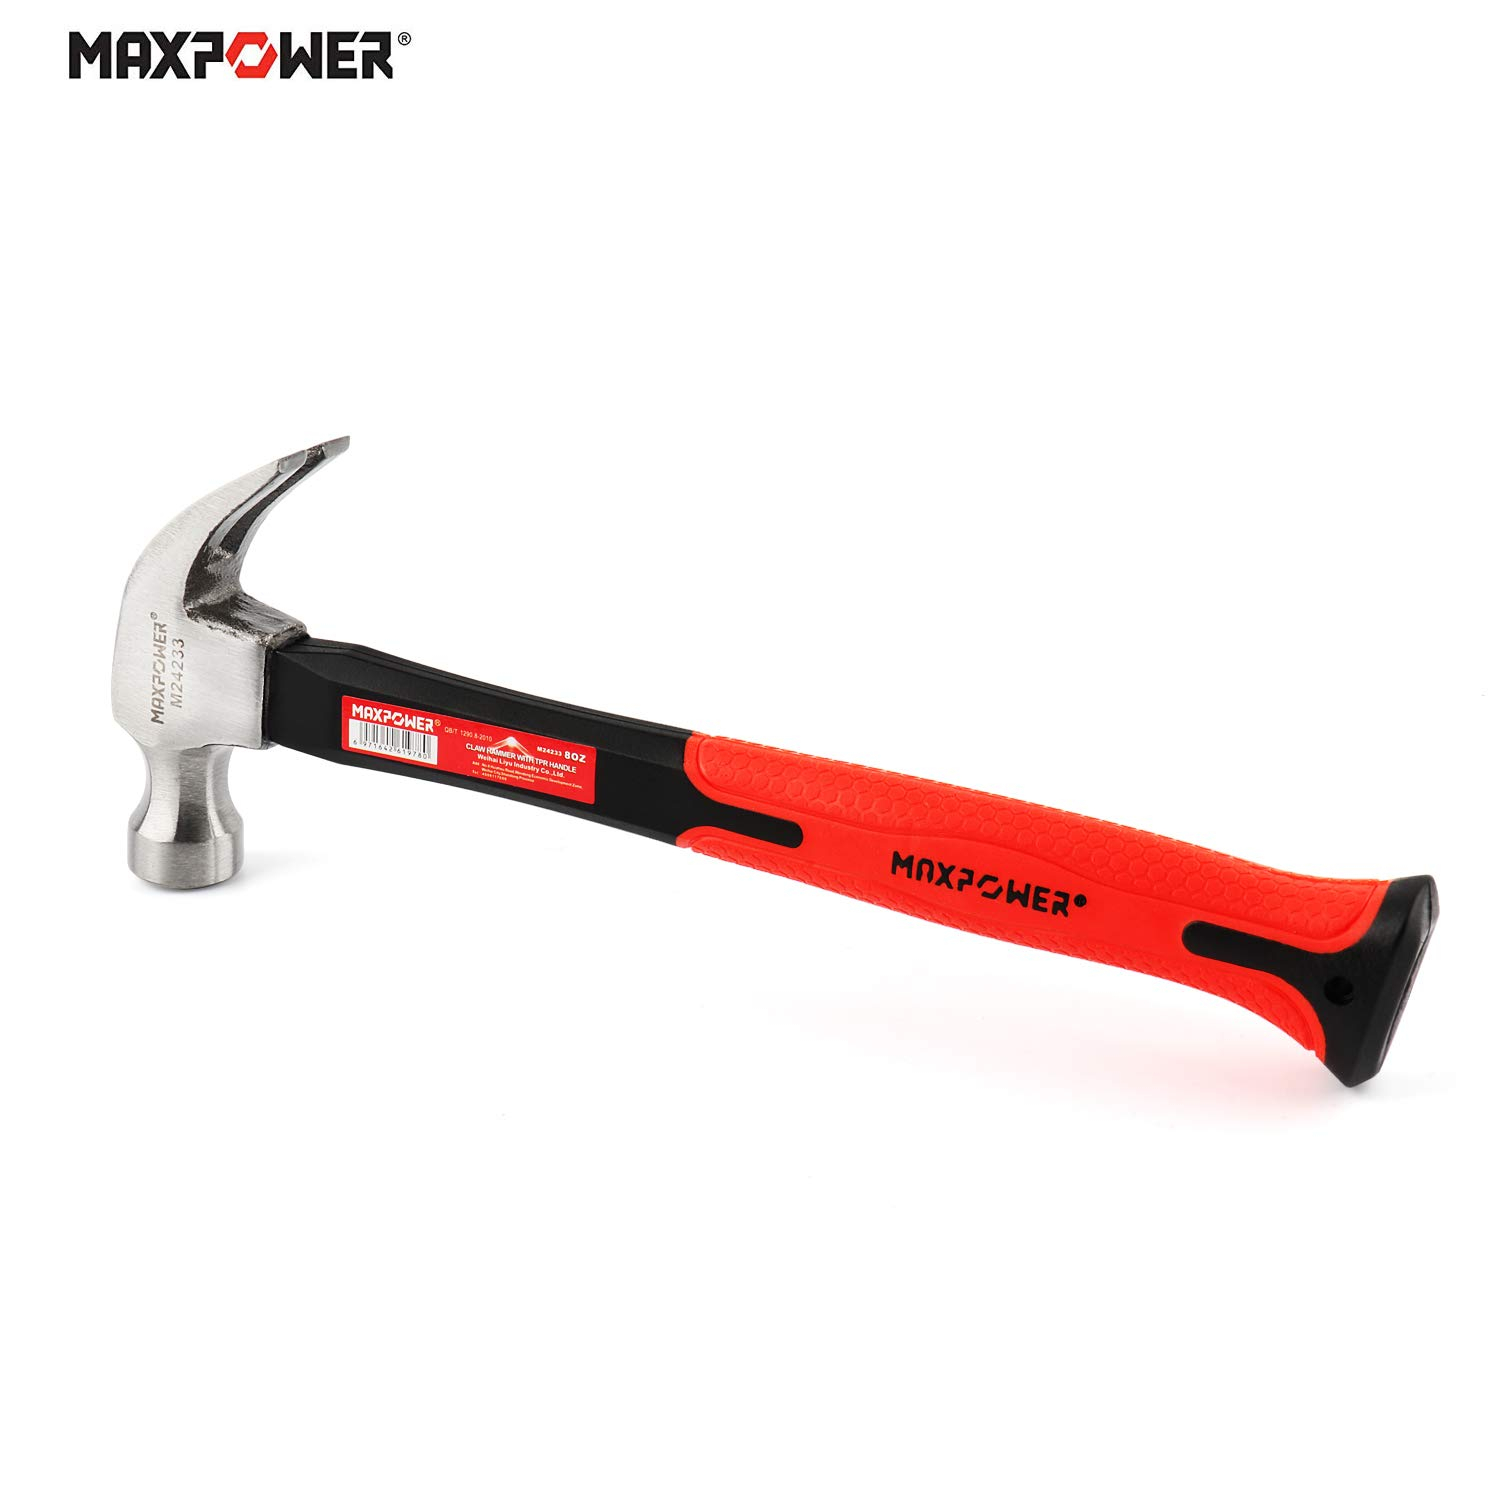 295mm Claw Hammer Professional Woodworking Joinery Home Carpentry Hand Hammer Nail Hammer Non-slip Multi-function Handle Hammer